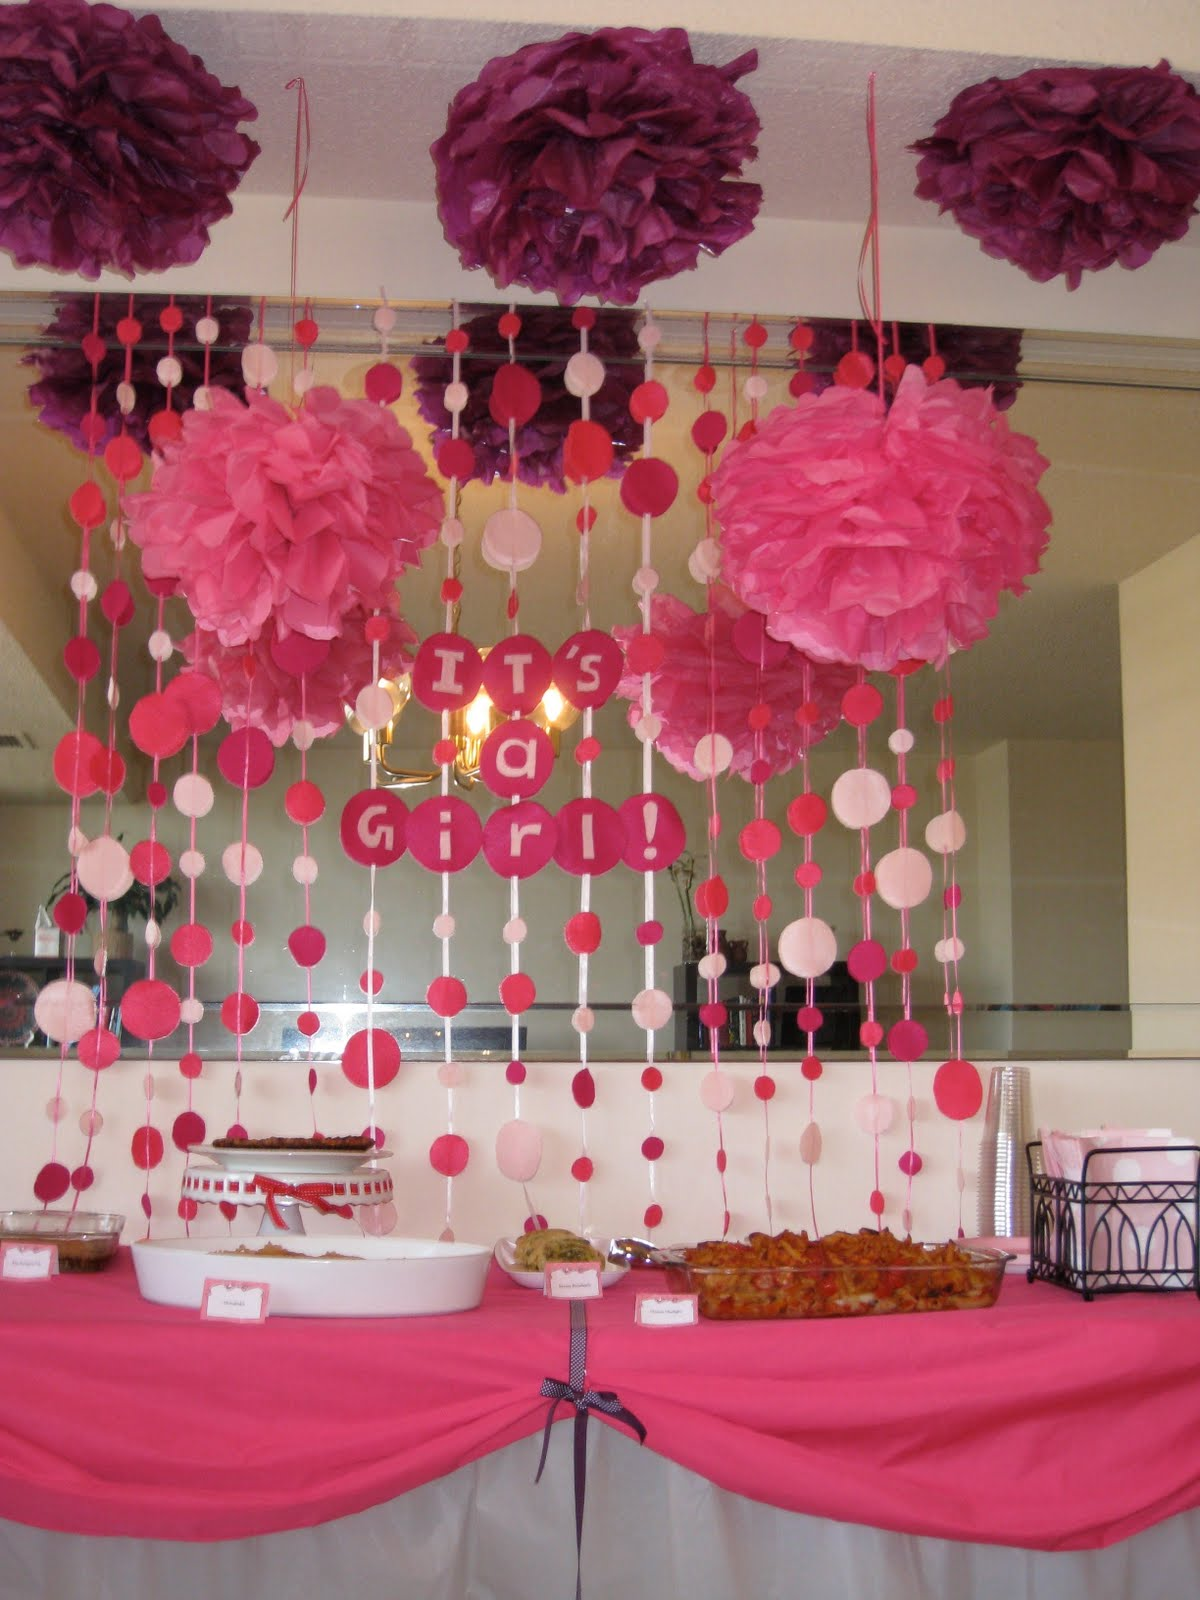 Baby shower food ideas baby shower ideas for a girl for Baby shower decoration pictures ideas